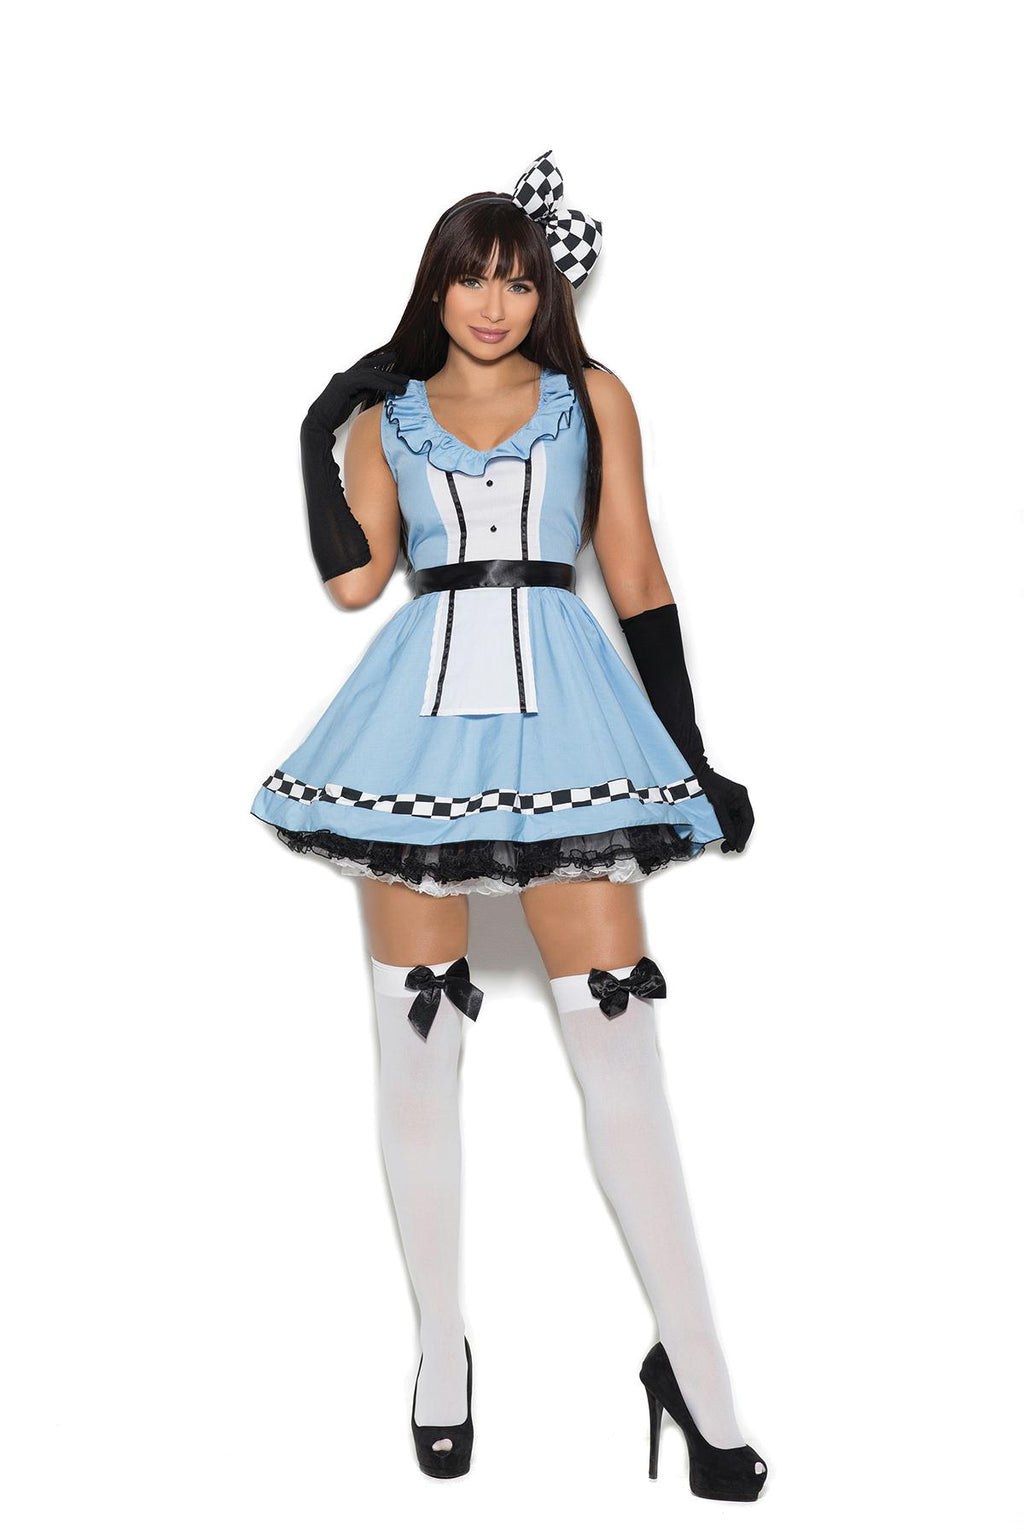 Storybook Alice - 4 pc. costume includes dress, head piece, apron and gloves.